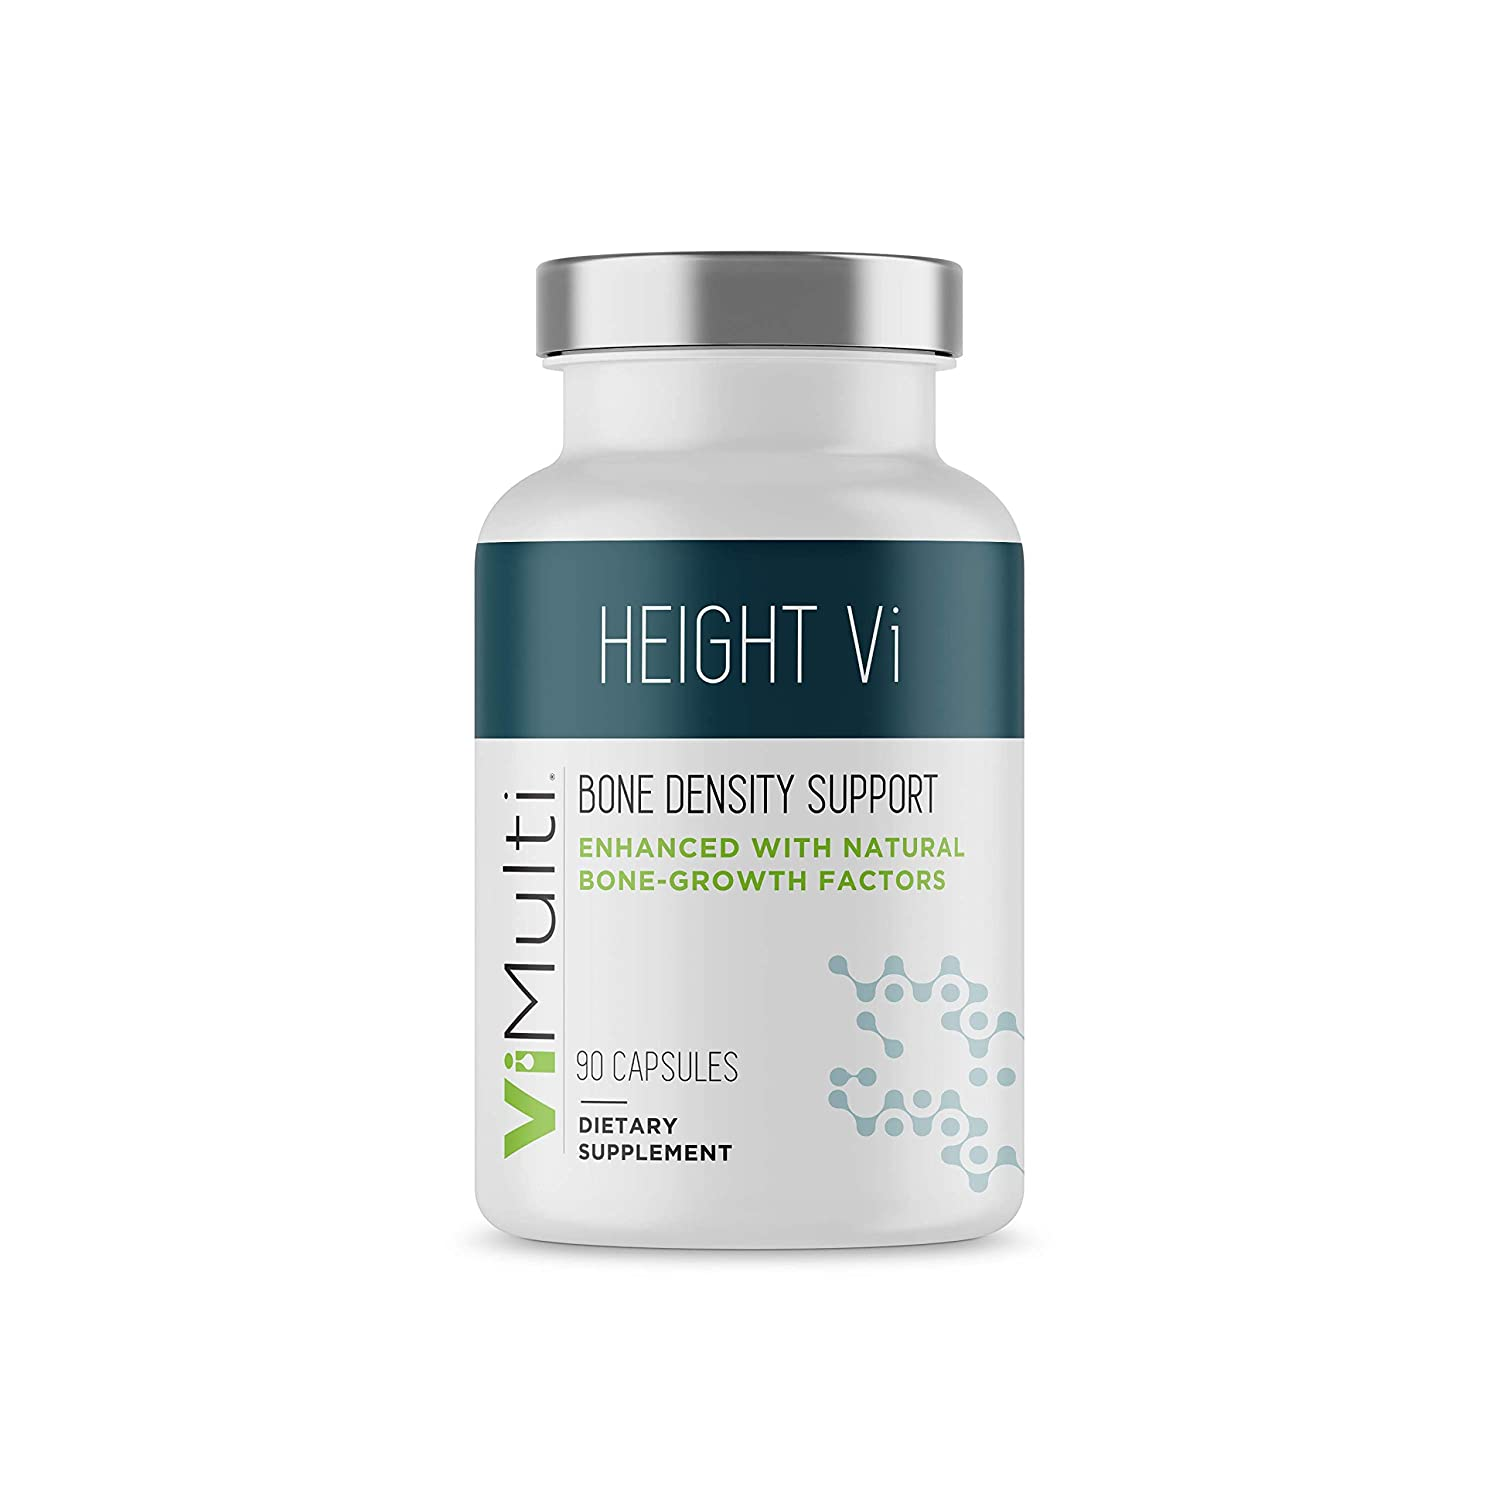 ViMulti HeightVi Natural Bone Growth Formulation to Maintain and Maximize Height Potential